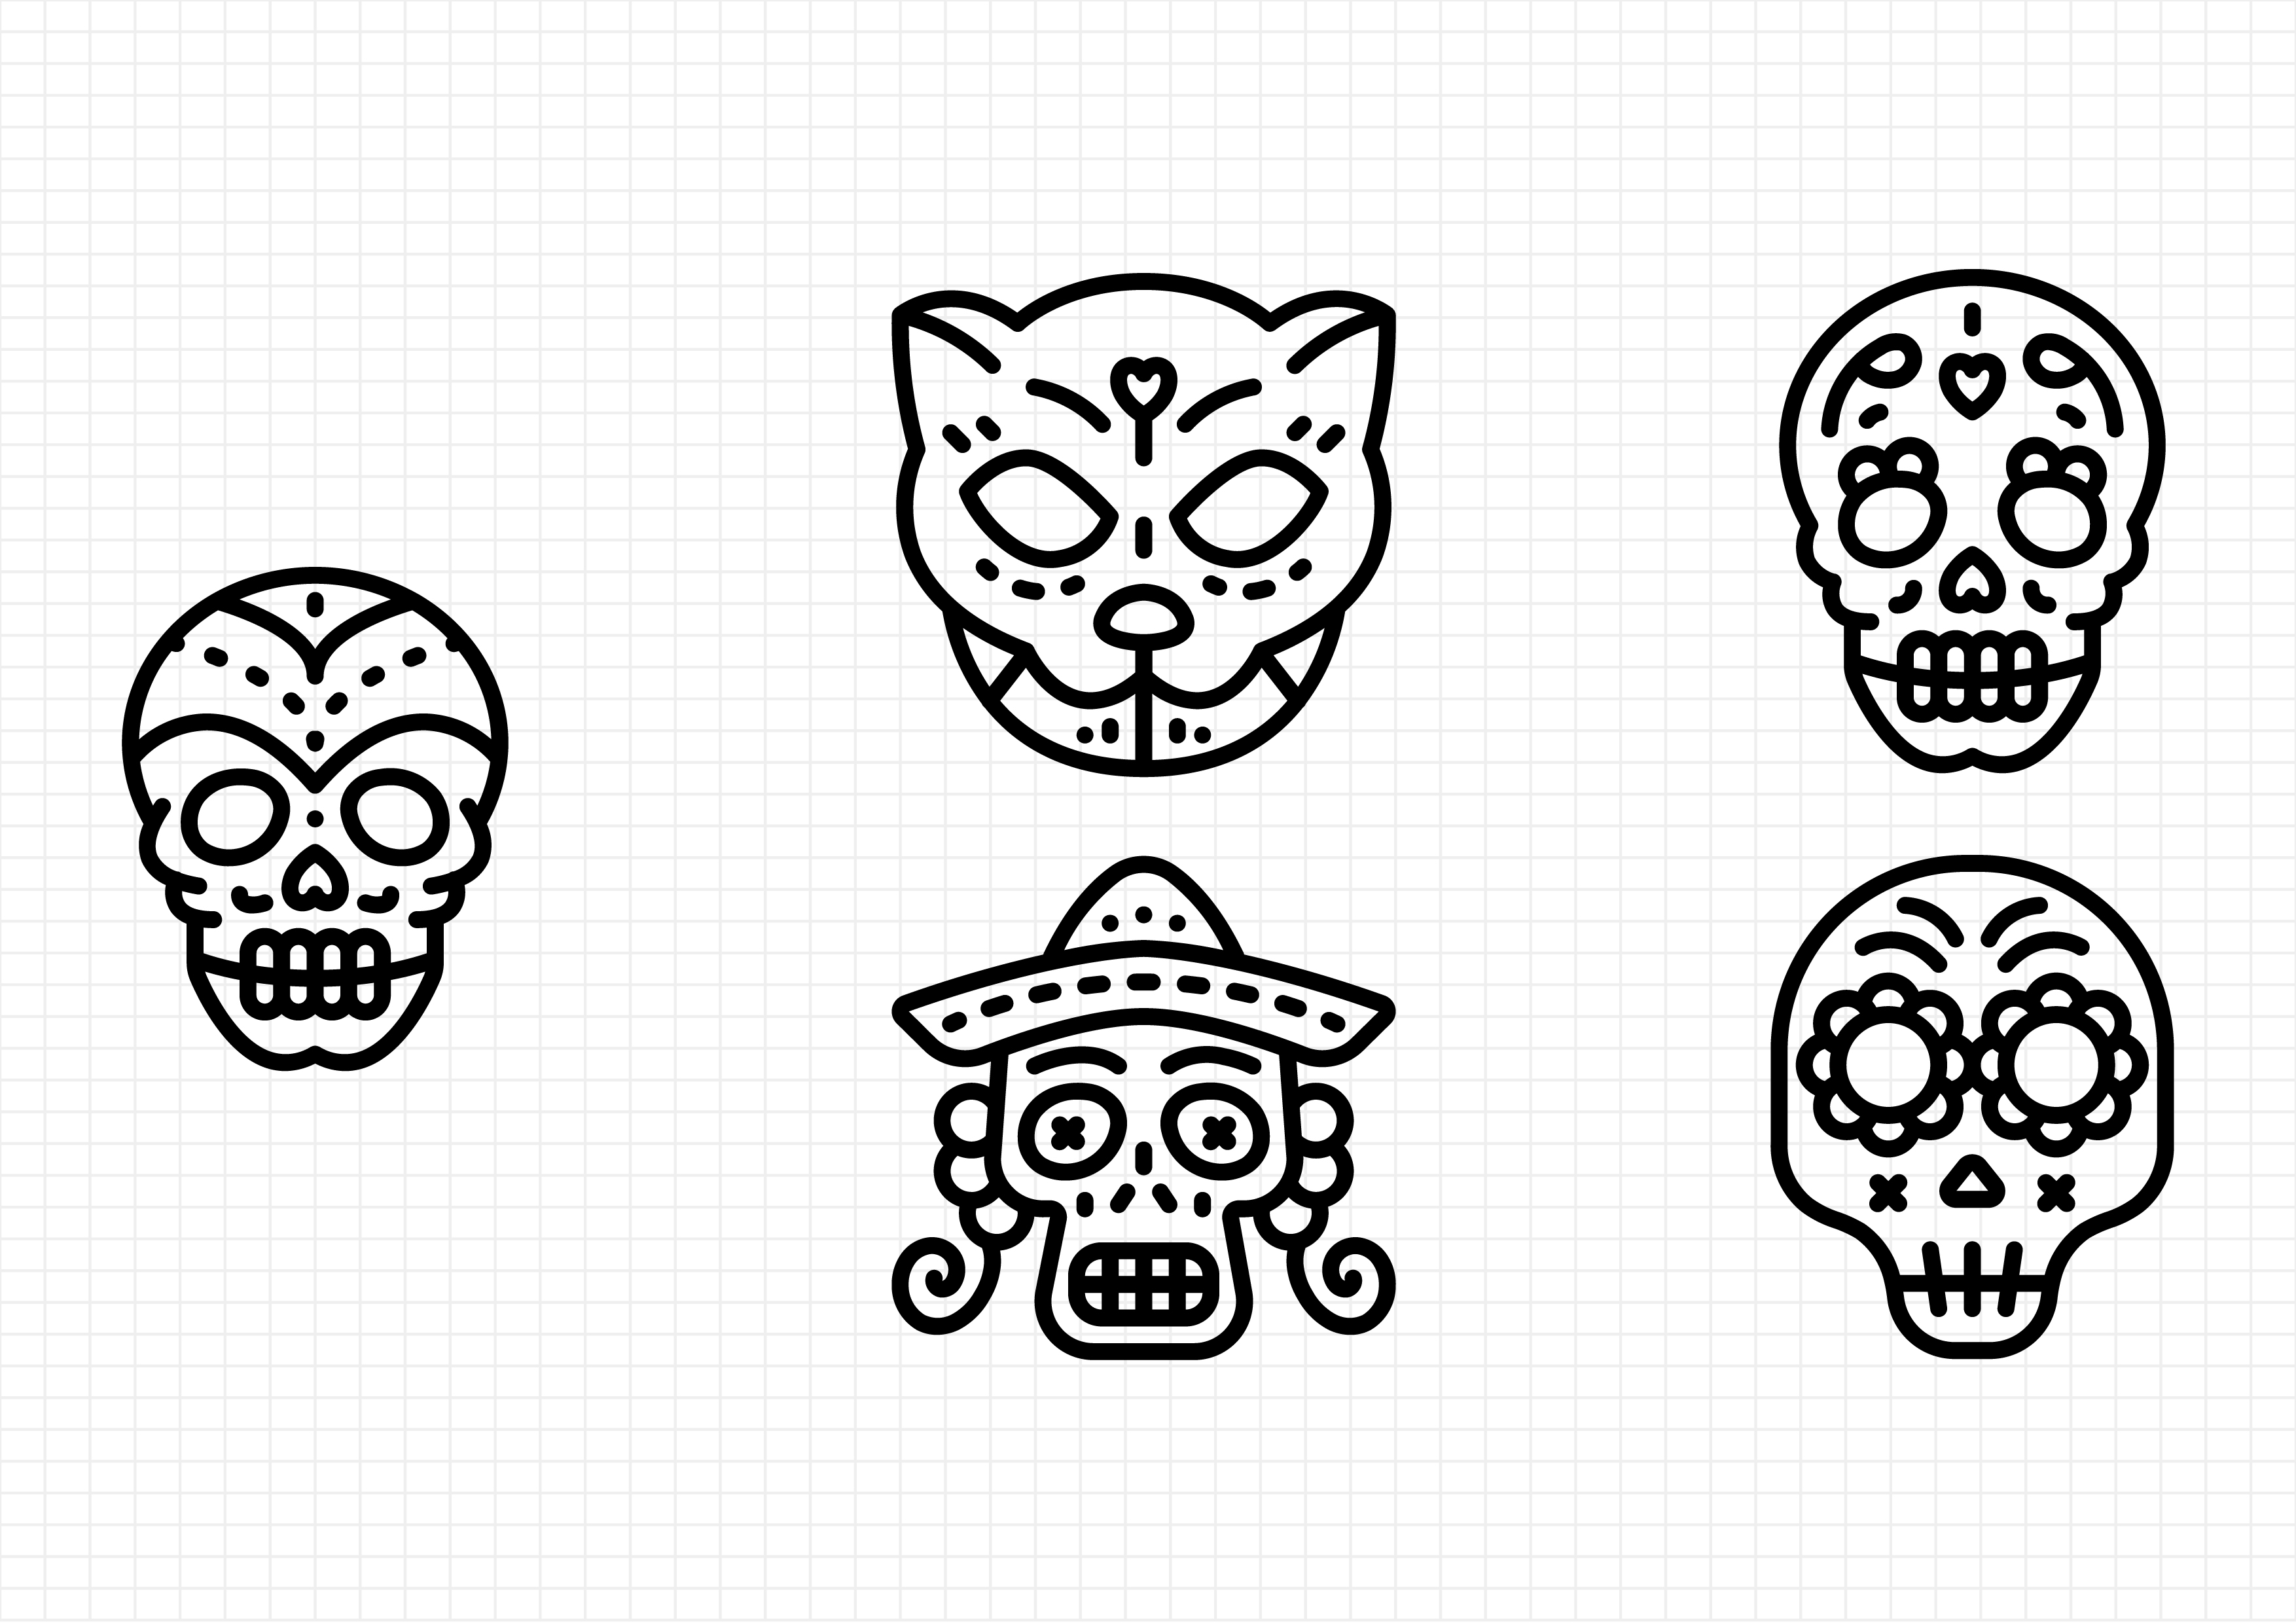 Download Free Day Of The Dead Graphic By Beryladamayu Creative Fabrica for Cricut Explore, Silhouette and other cutting machines.